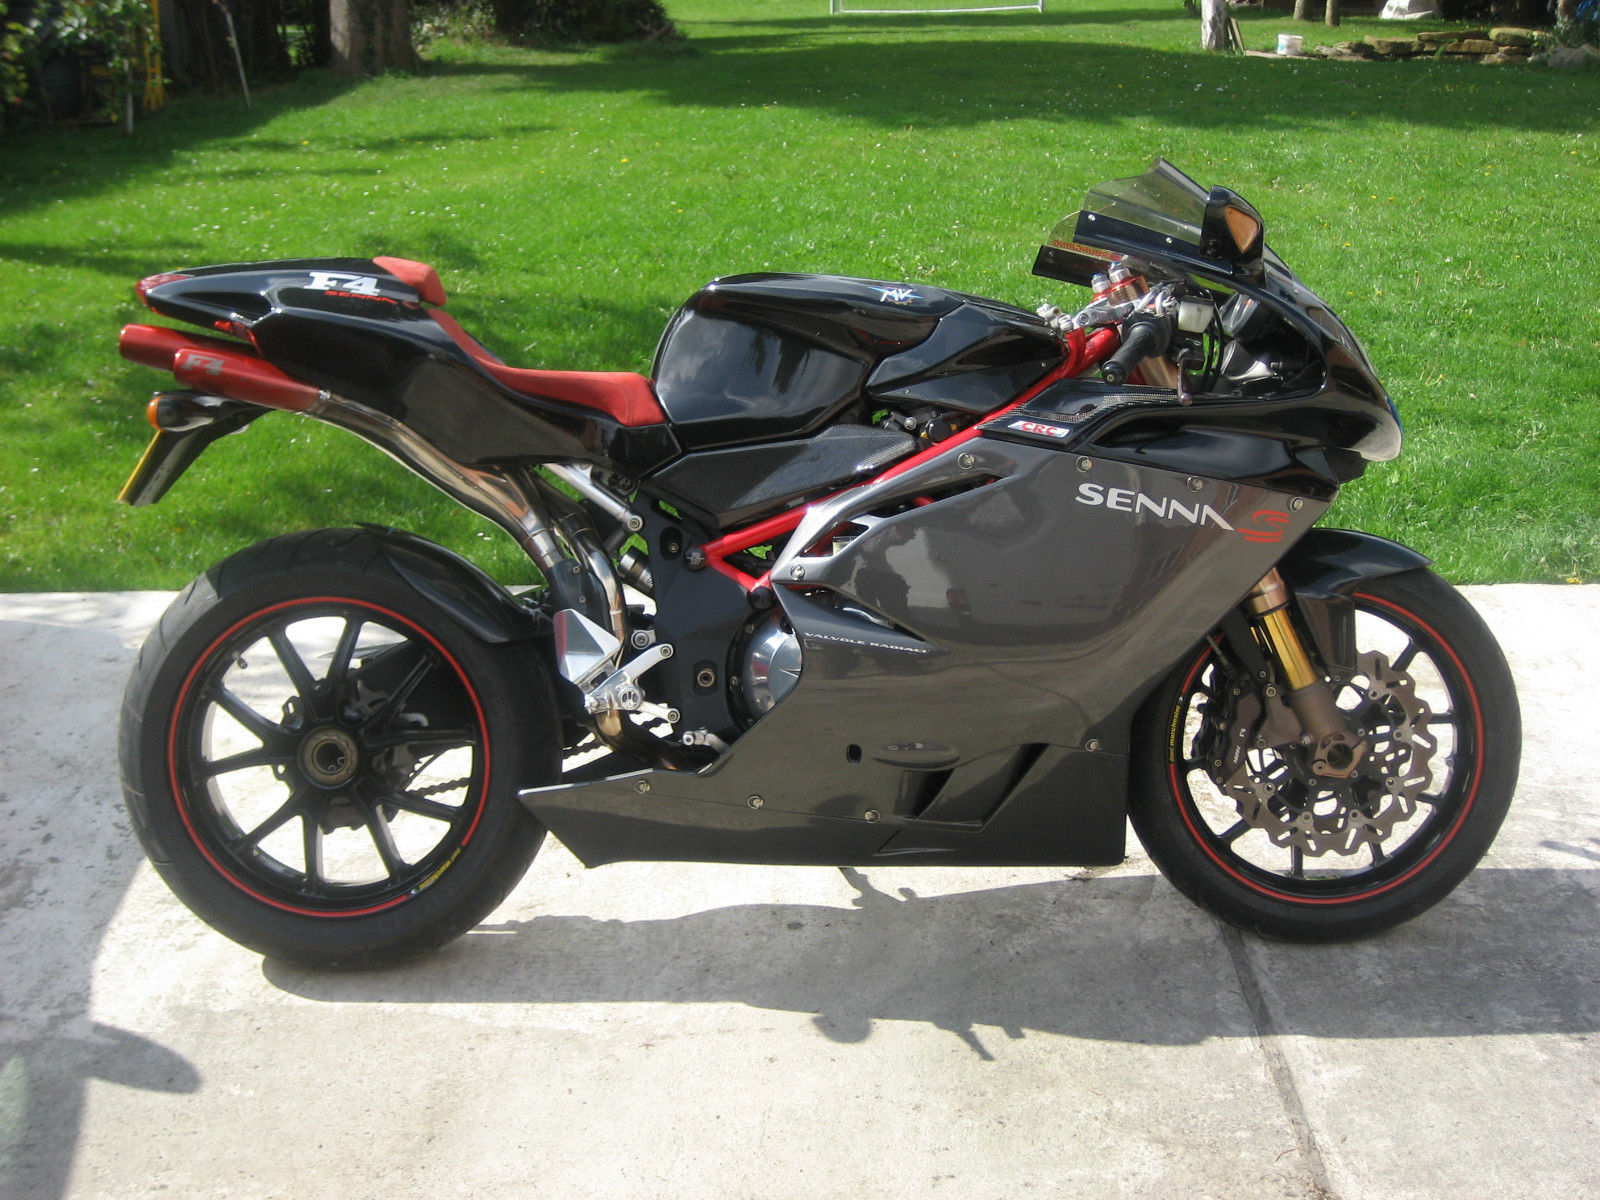 good job tastefully upgraded 2002 mv agusta senna 750 in the uk rare sportbikes for sale. Black Bedroom Furniture Sets. Home Design Ideas